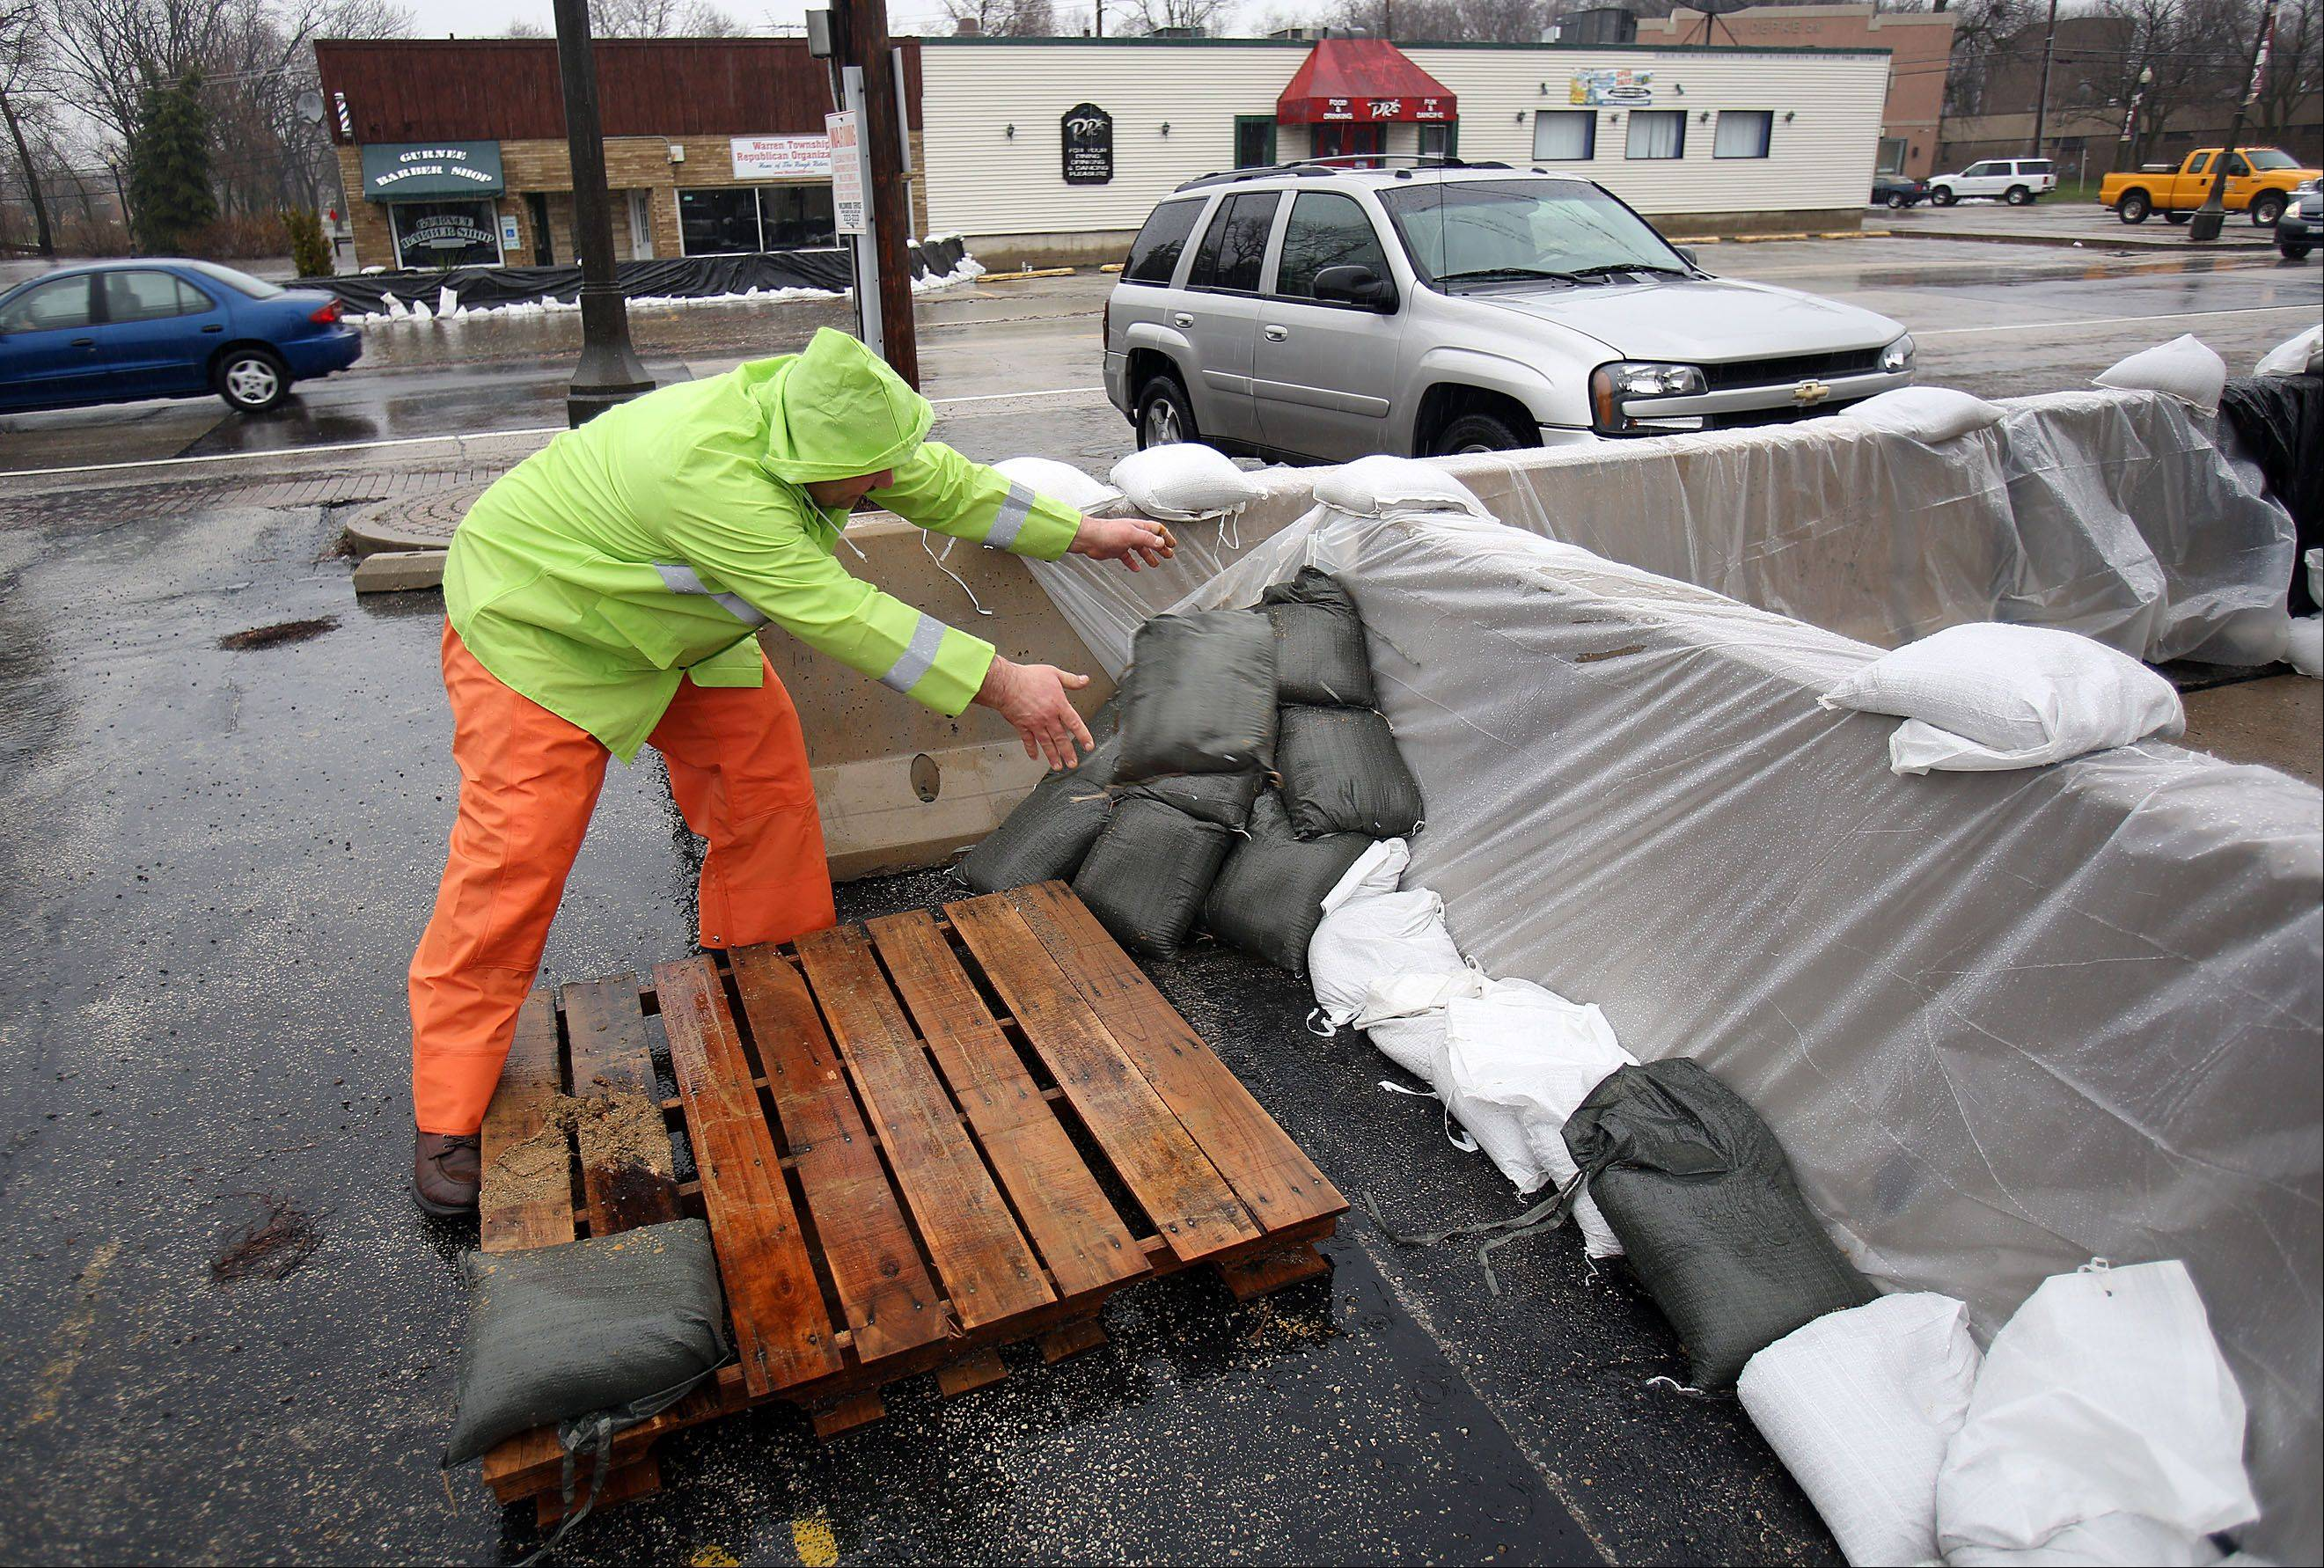 Steve Lundy/slundy@dailyherald.comVolunteer Fred Rickert of Zion places sandbags at Tranquility Salon on Old Grand Avenue in Gurnee Thursday morning.